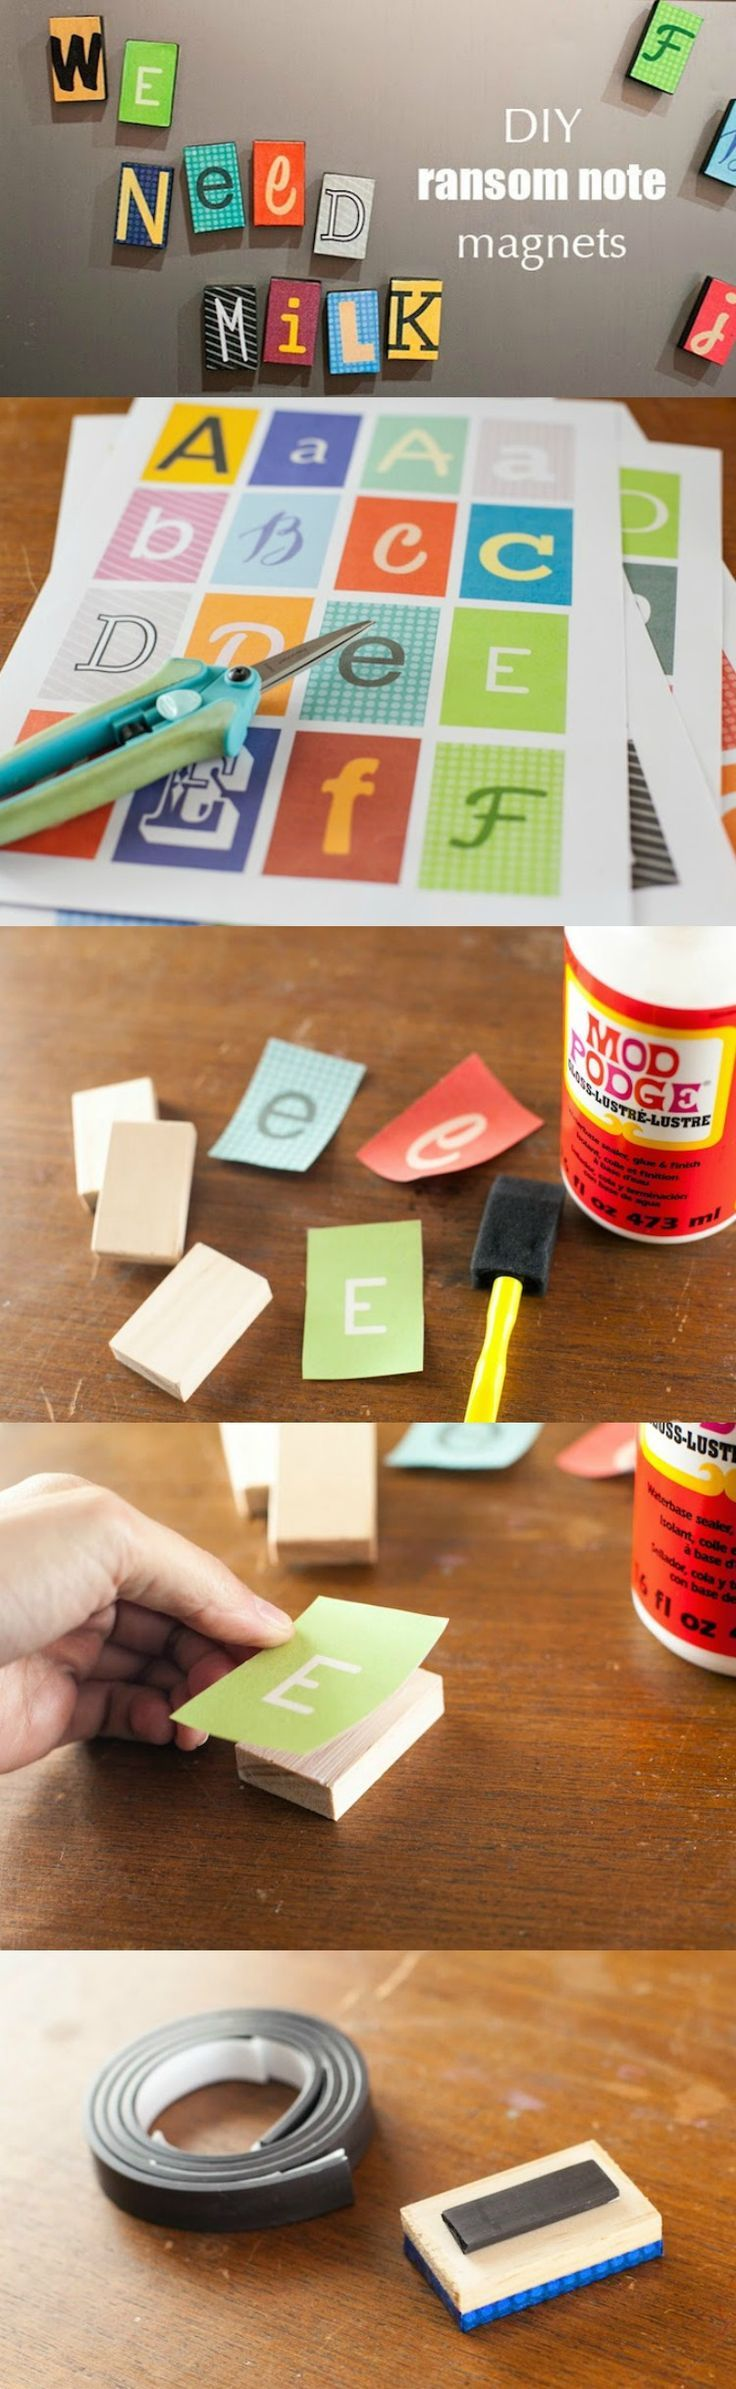 Alfabeto magnetico fai da te - These DIY magnets are so easy . . . and the ransom note font makes them fun, too! Make with Mod Podge . . . and you can also get the free printable by clicking through!